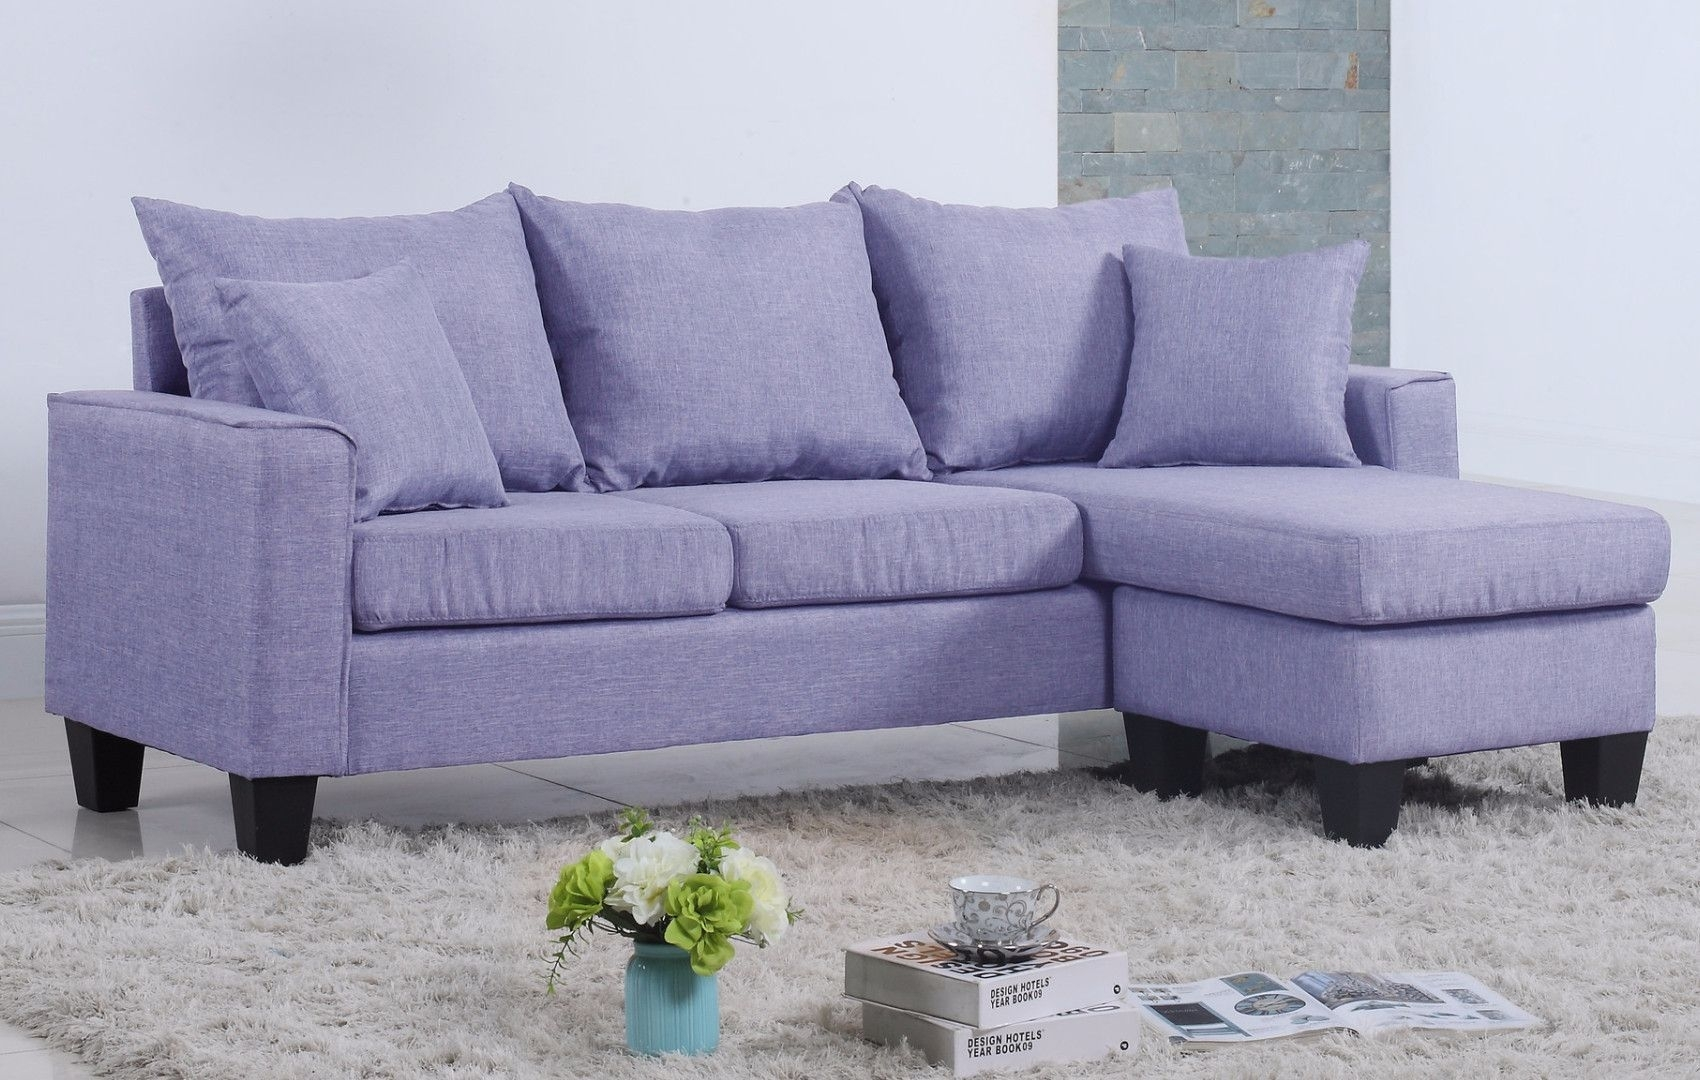 Modern Linen Fabric Small Space Sectional Sofa With Reversible With Regard To Collins Sofa Sectionals With Reversible Chaise (View 18 of 30)